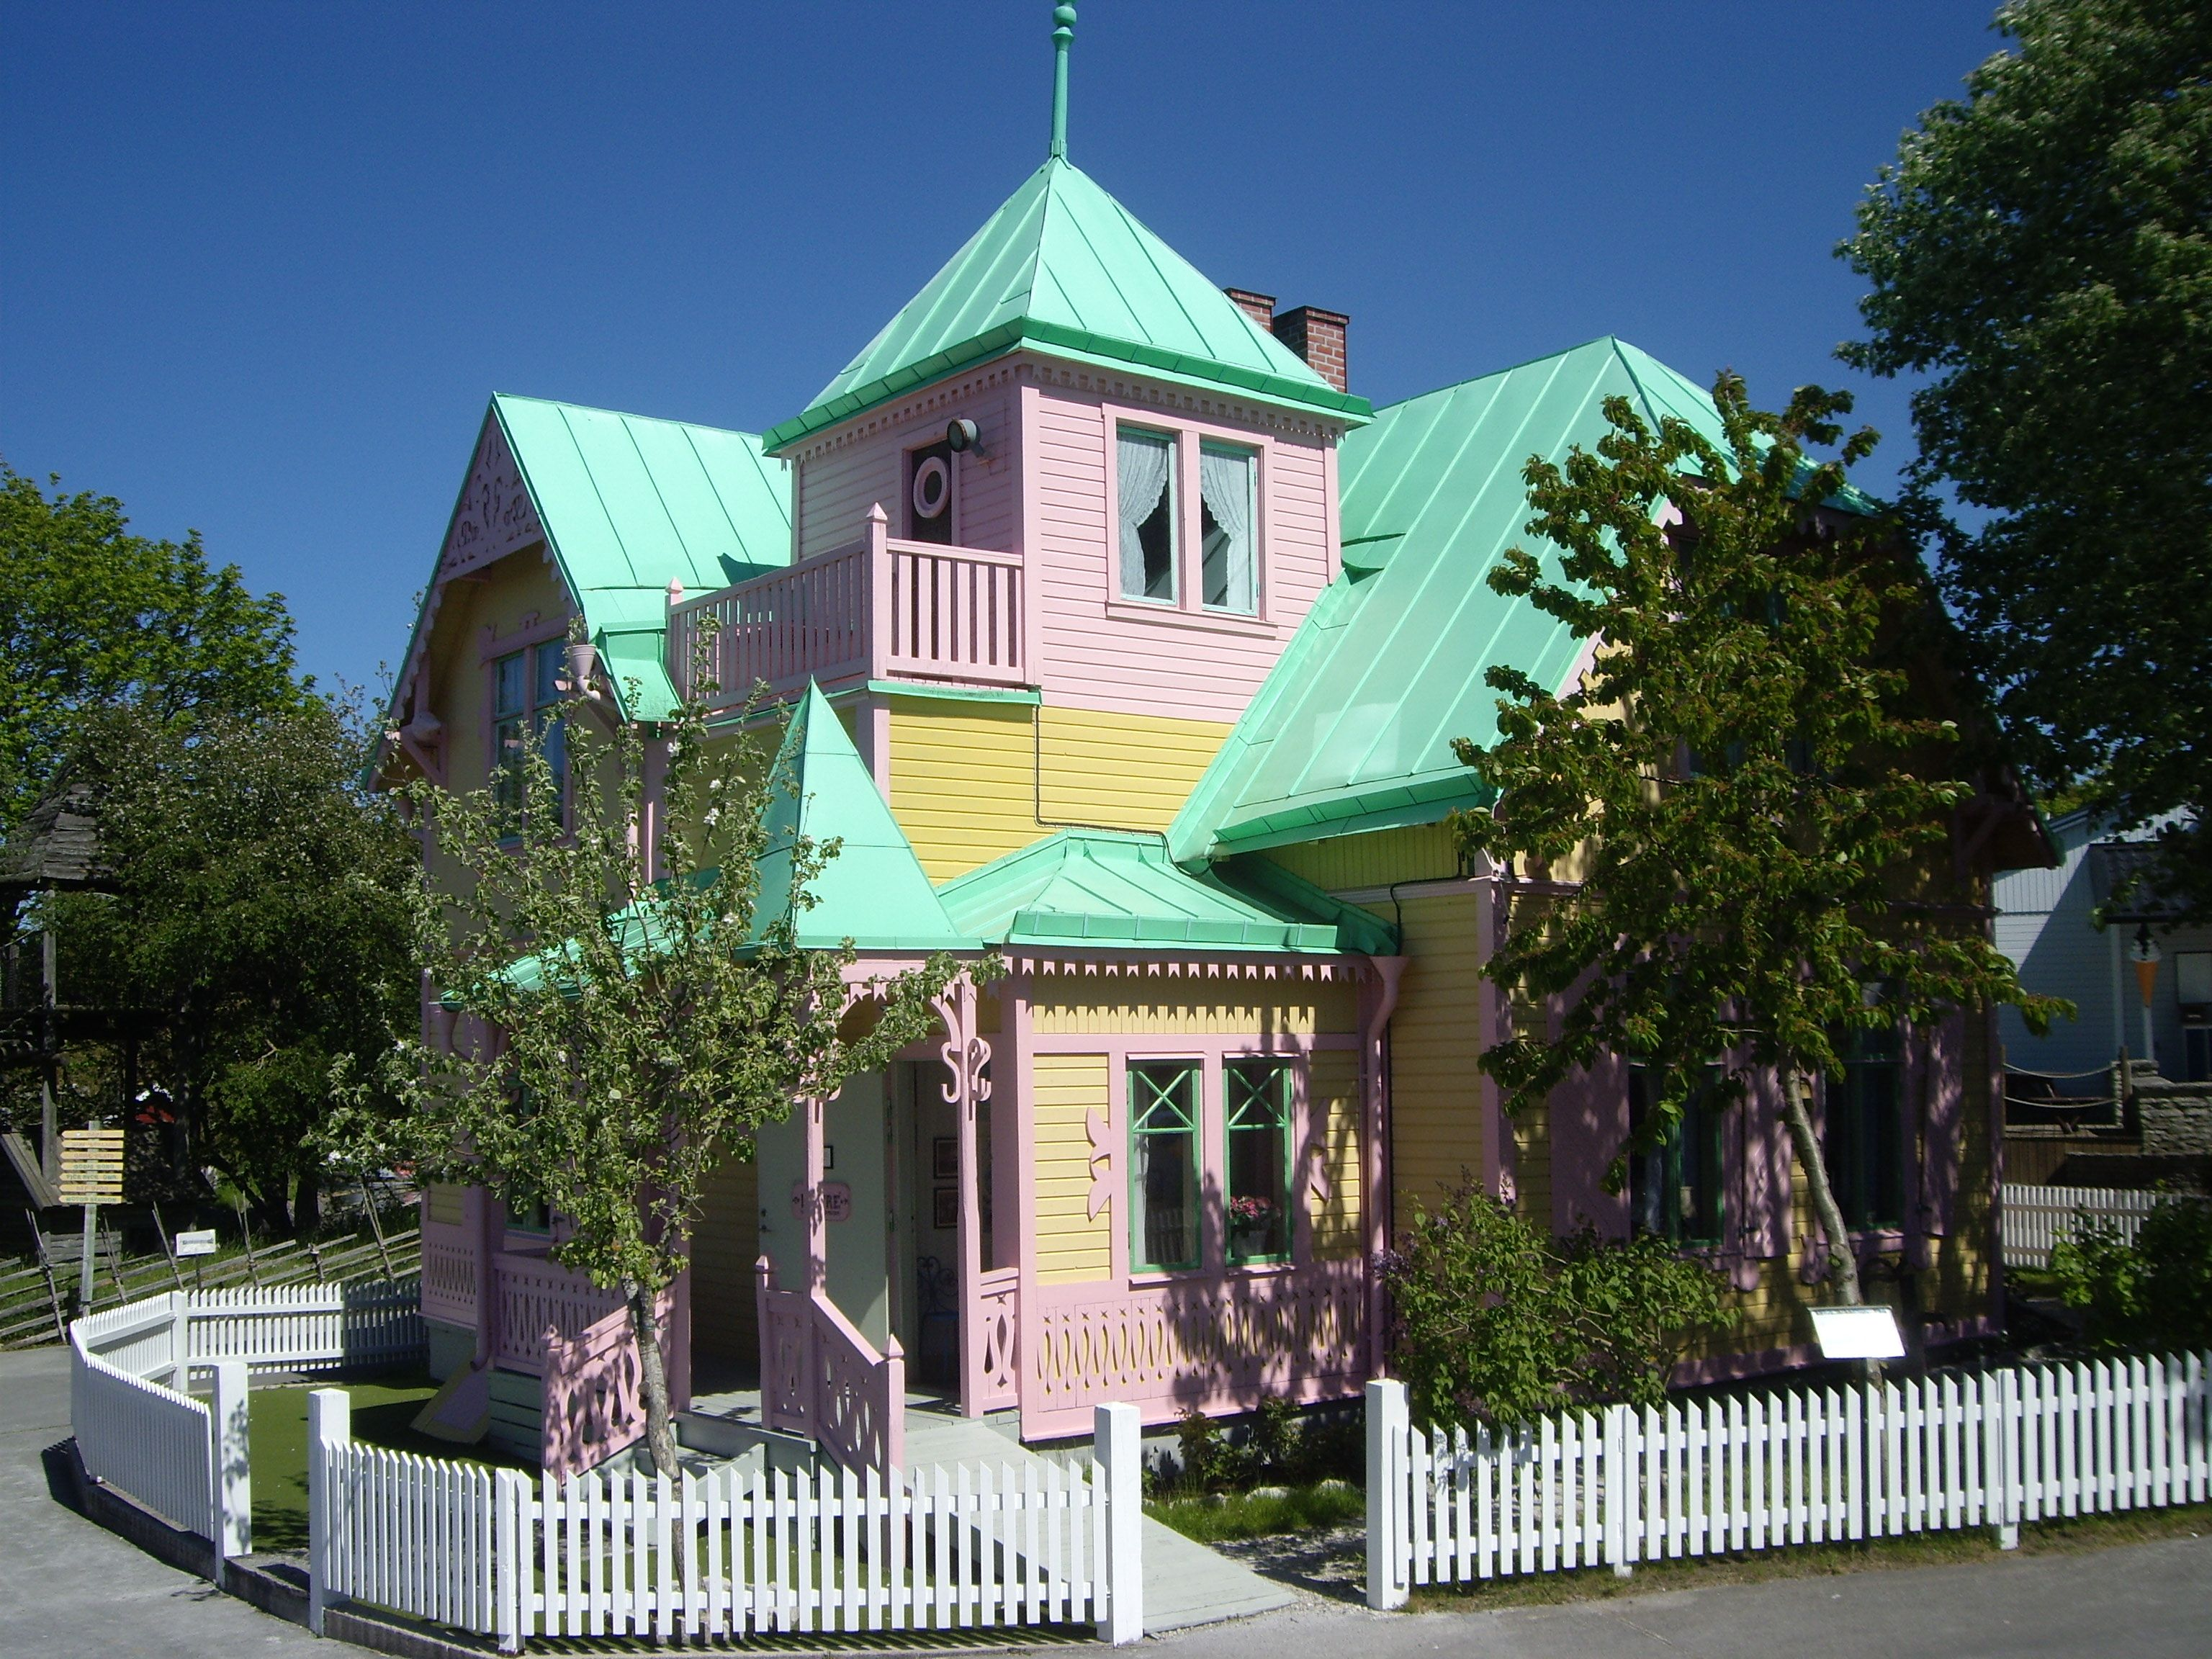 House of Pippi Longstocking near Visby Gotland Sweden